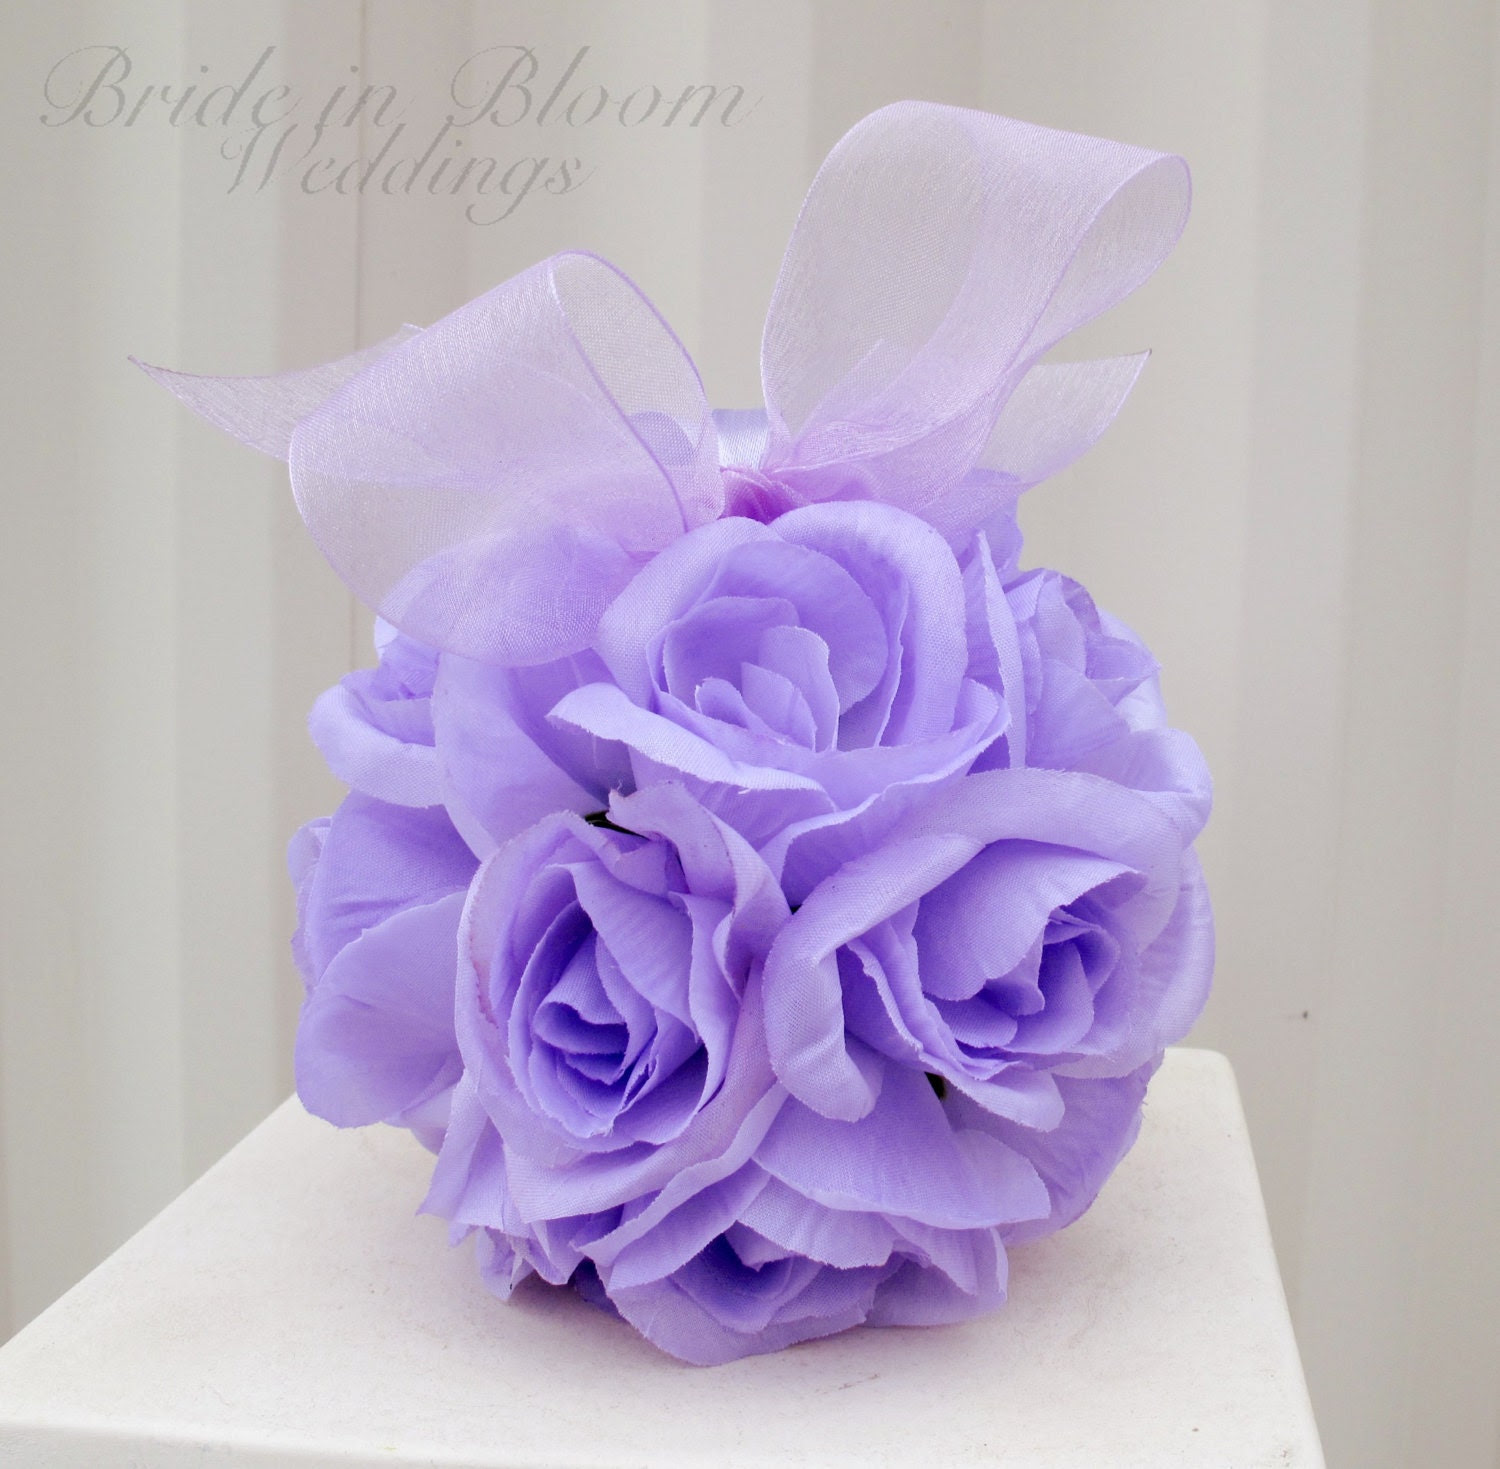 Wedding flower ball flower girl pomander lavender bouquet kissing ball wedding decoration - BrideinBloomWeddings